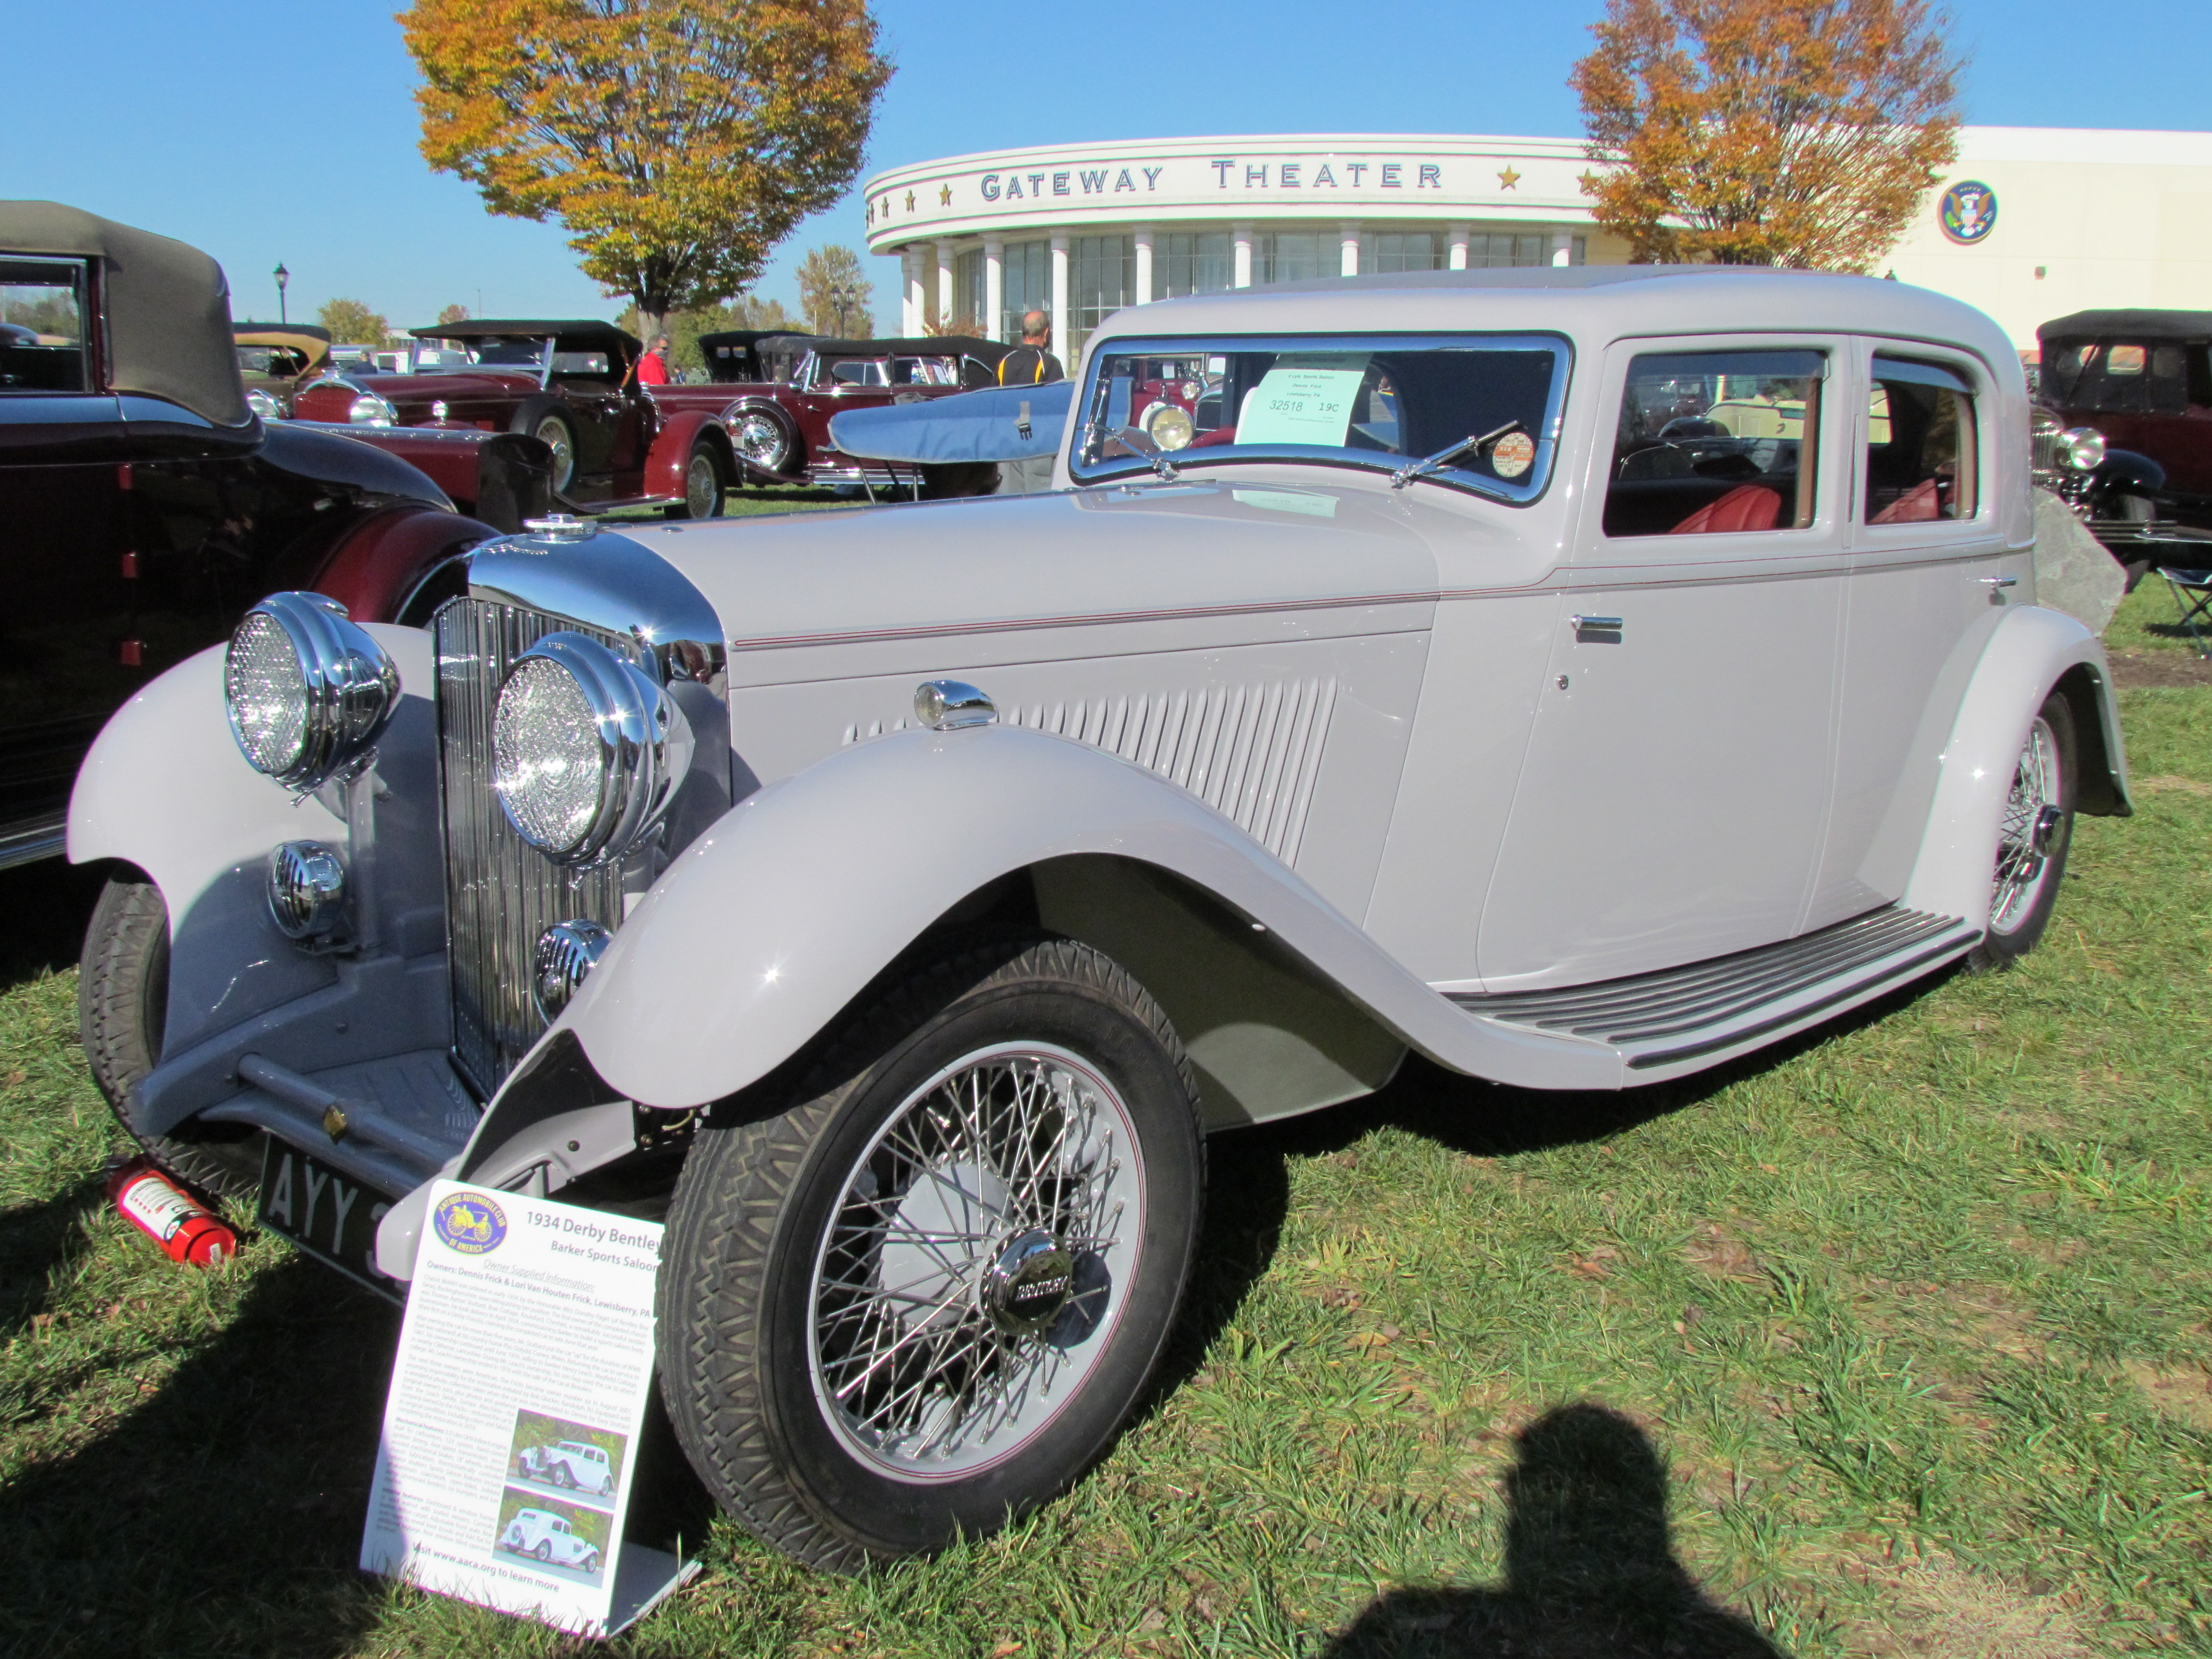 2020 AACA Fall Meet Photo Coverage: Our Last Blast Of Amazing Automotive Images From This Huge Show